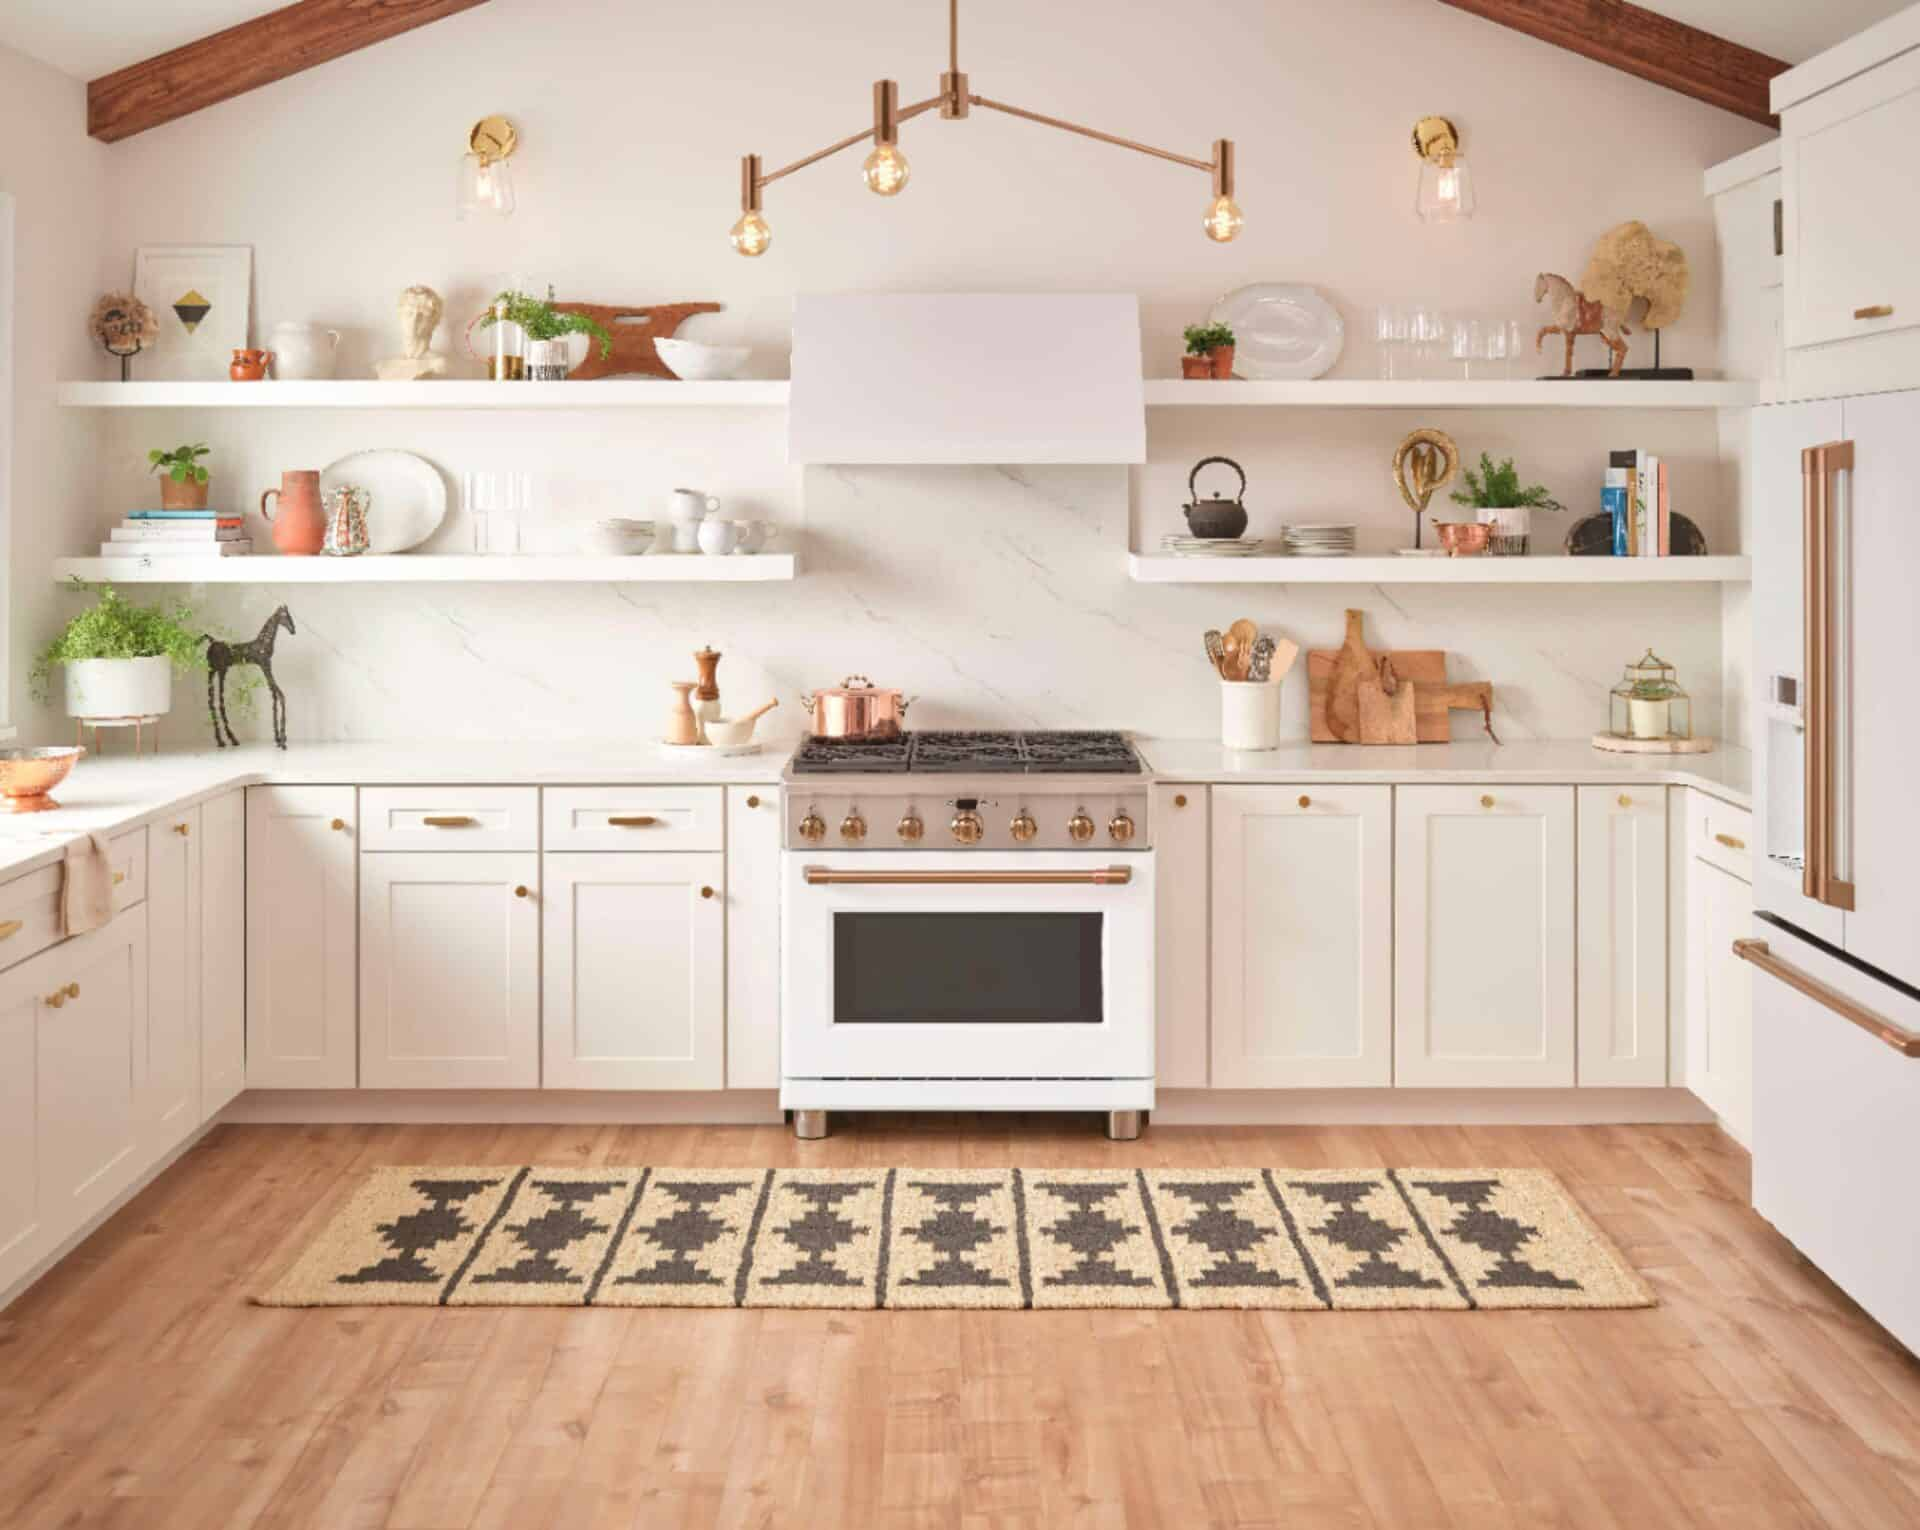 Upgrade Your Kitchen To The Next Level With The Cafe Matte Collection By GE